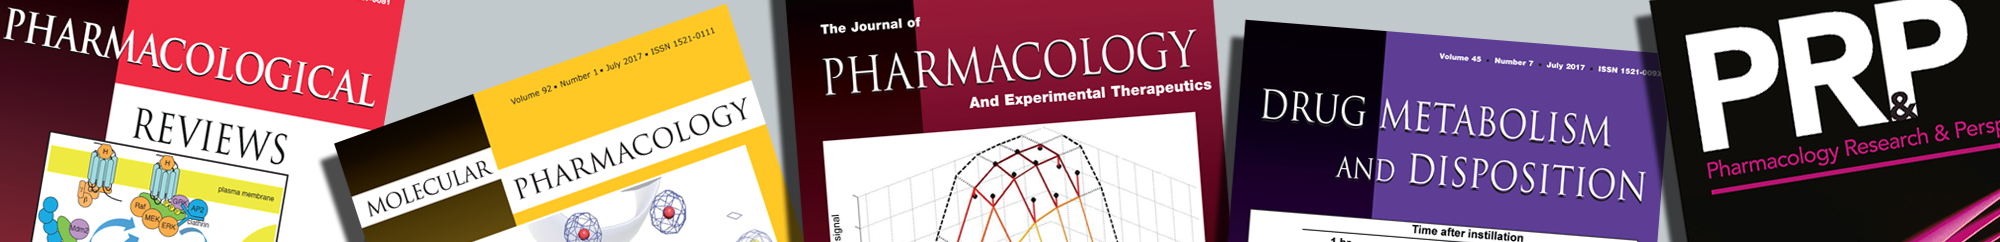 ASPET   The Journal of Pharmacology and Experimental